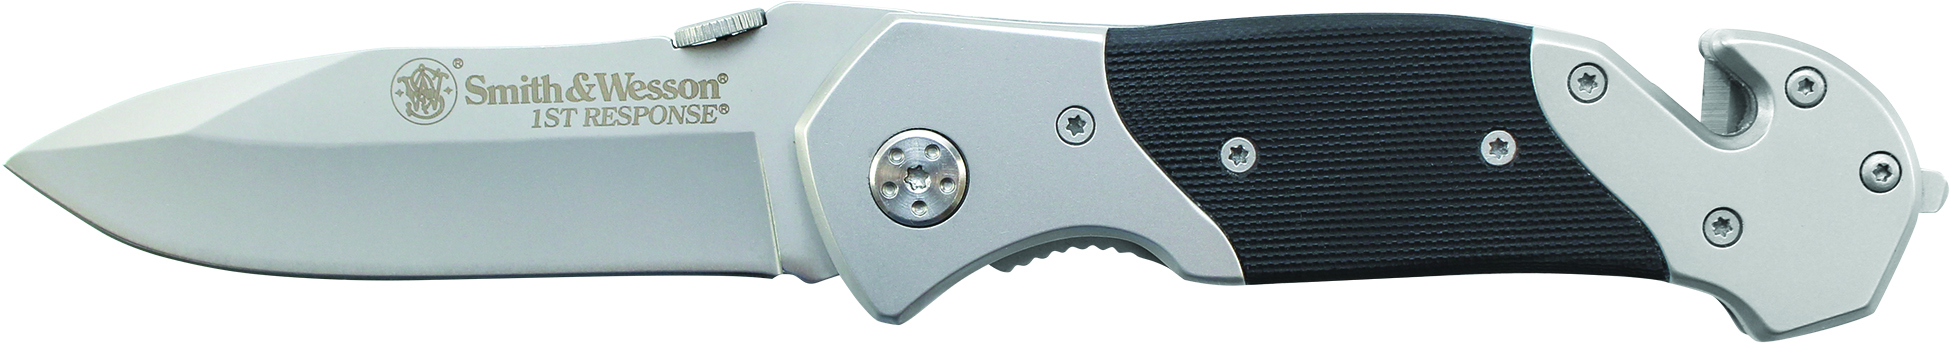 SWFR - Smith & Wesson First Response Drop Pnt Blade w/Black G10 Insert, Belt Cutter,Win Punch w/PC